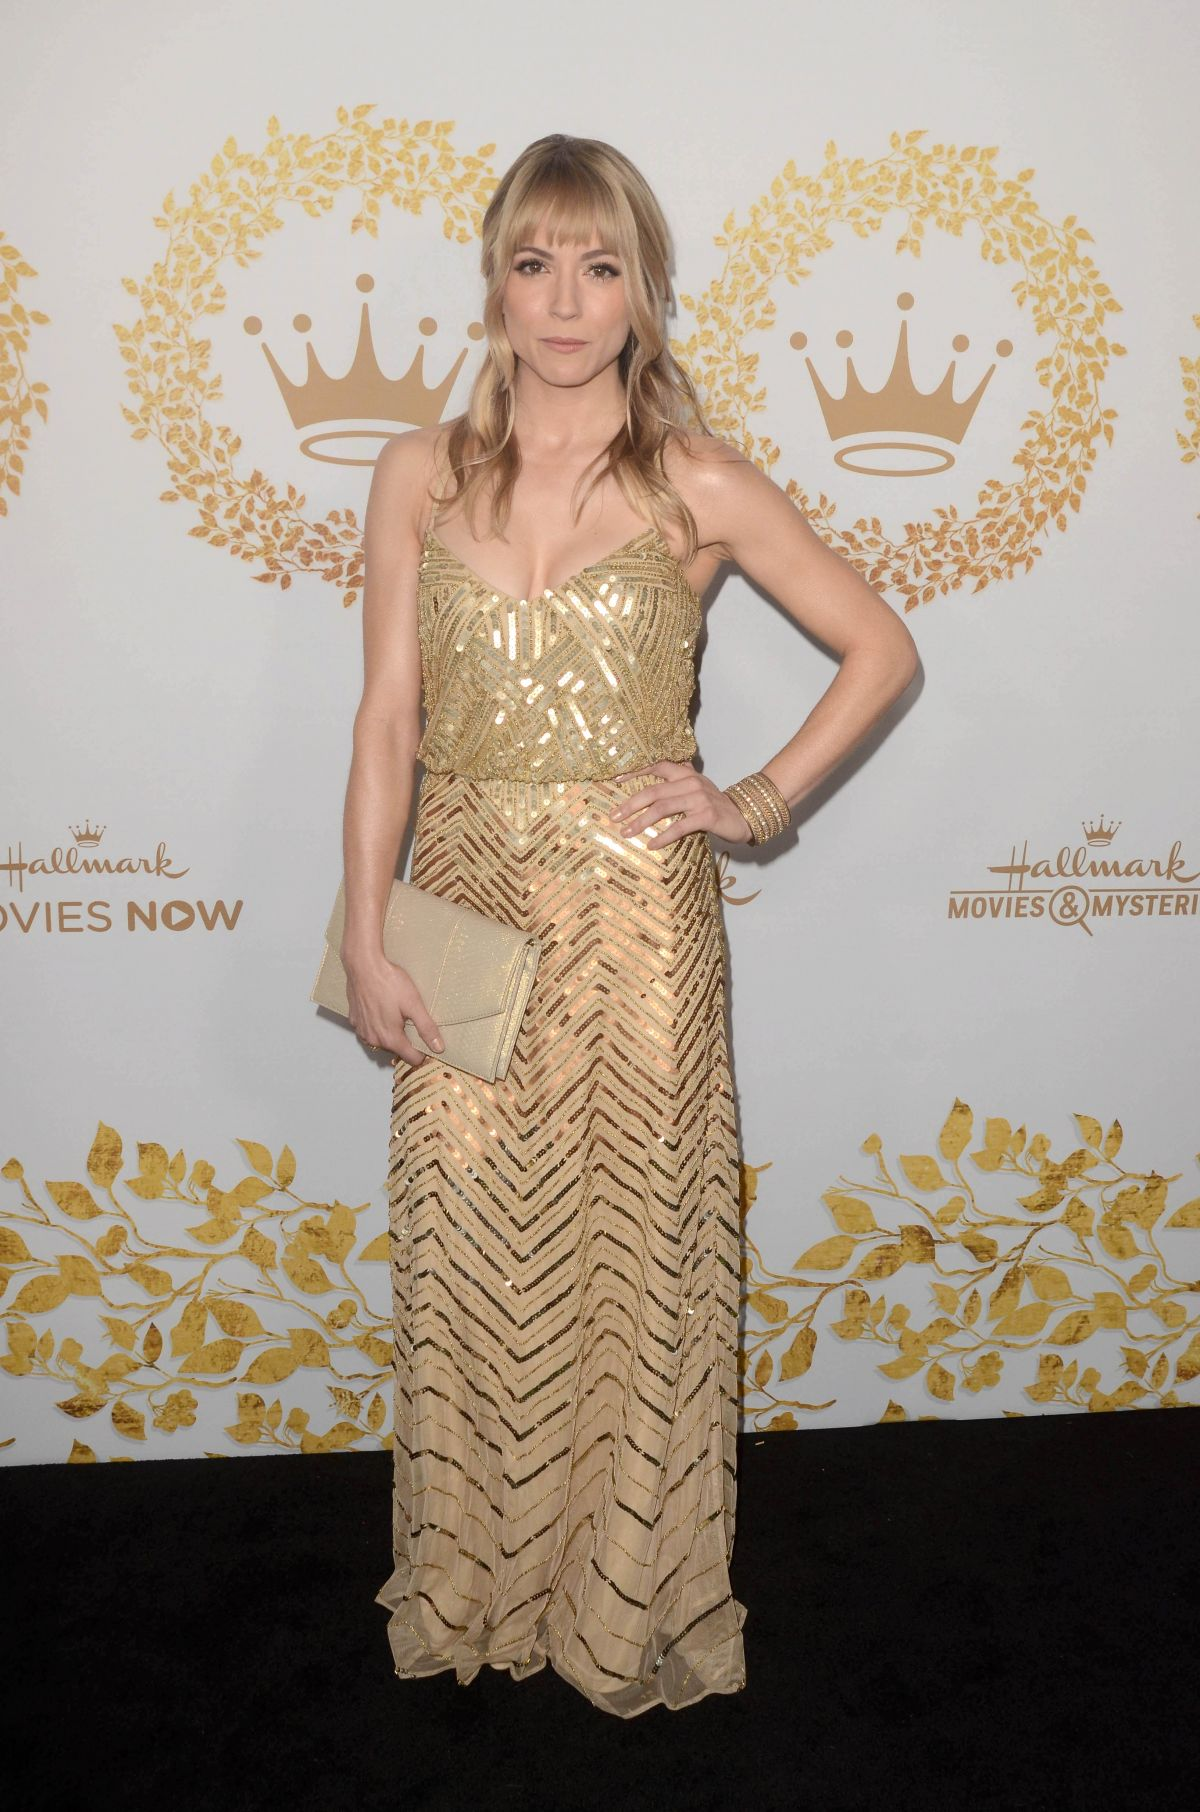 brooke nevin at hallmark movies mysteries 2019 winter tca tour in pasadena celebzz. Black Bedroom Furniture Sets. Home Design Ideas